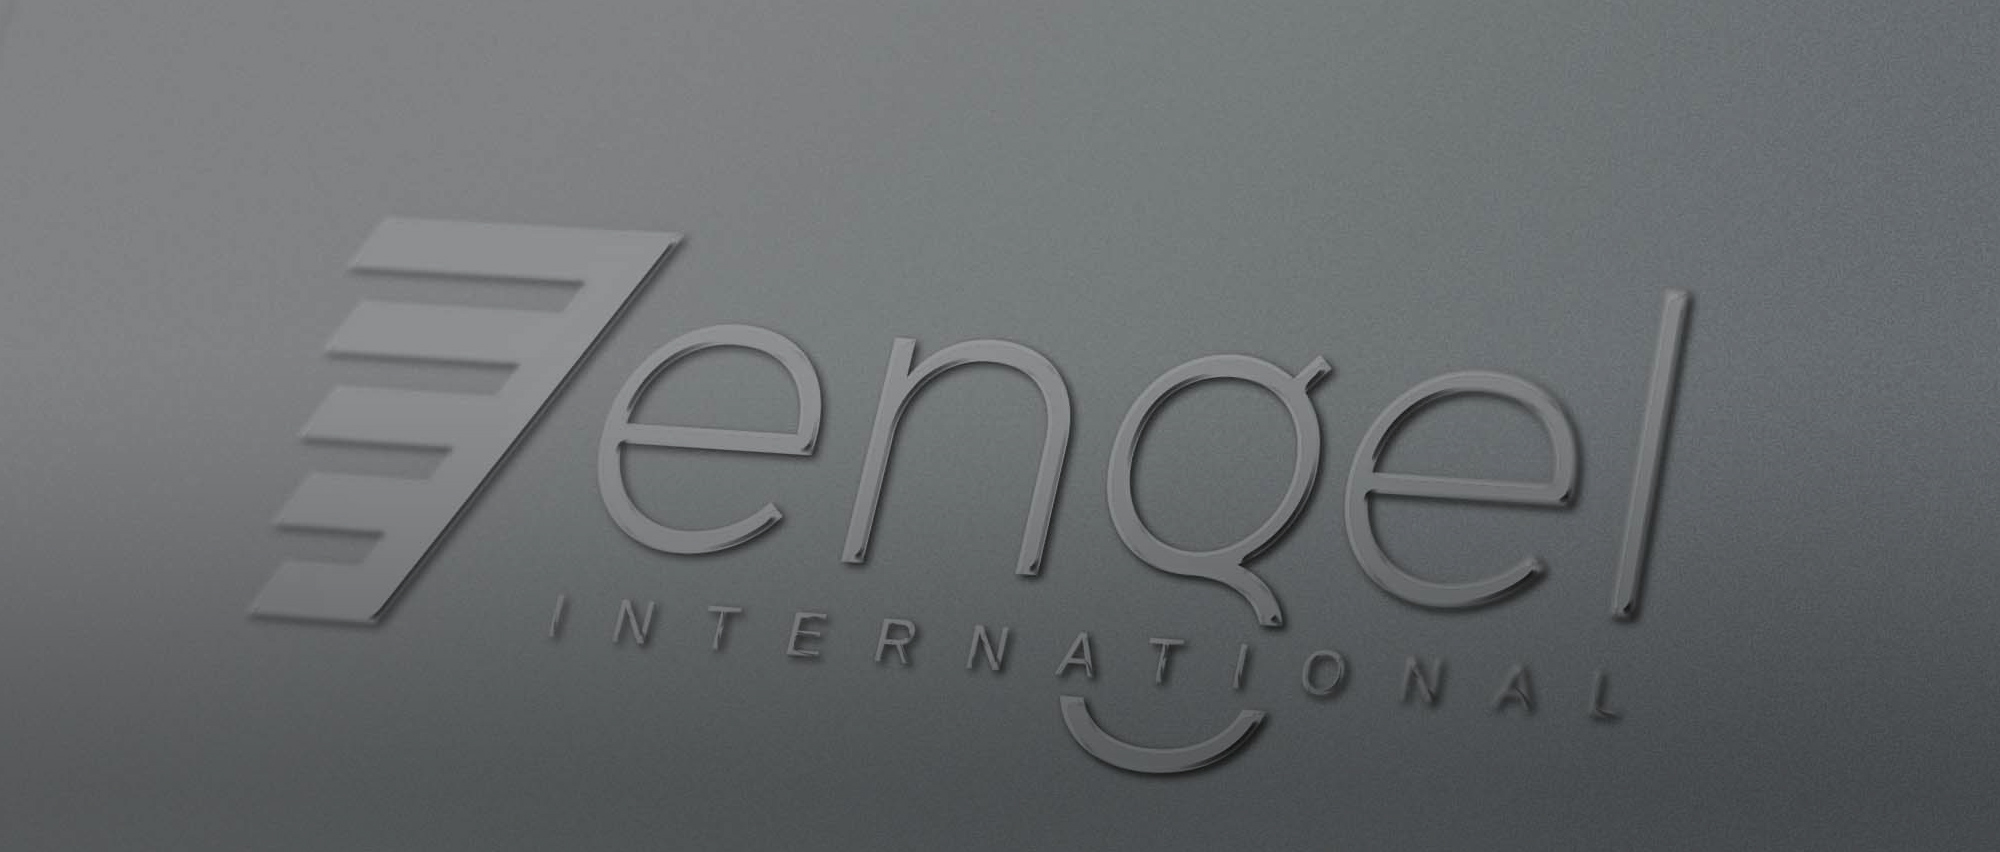 Engel International - Carsten Albert Engel